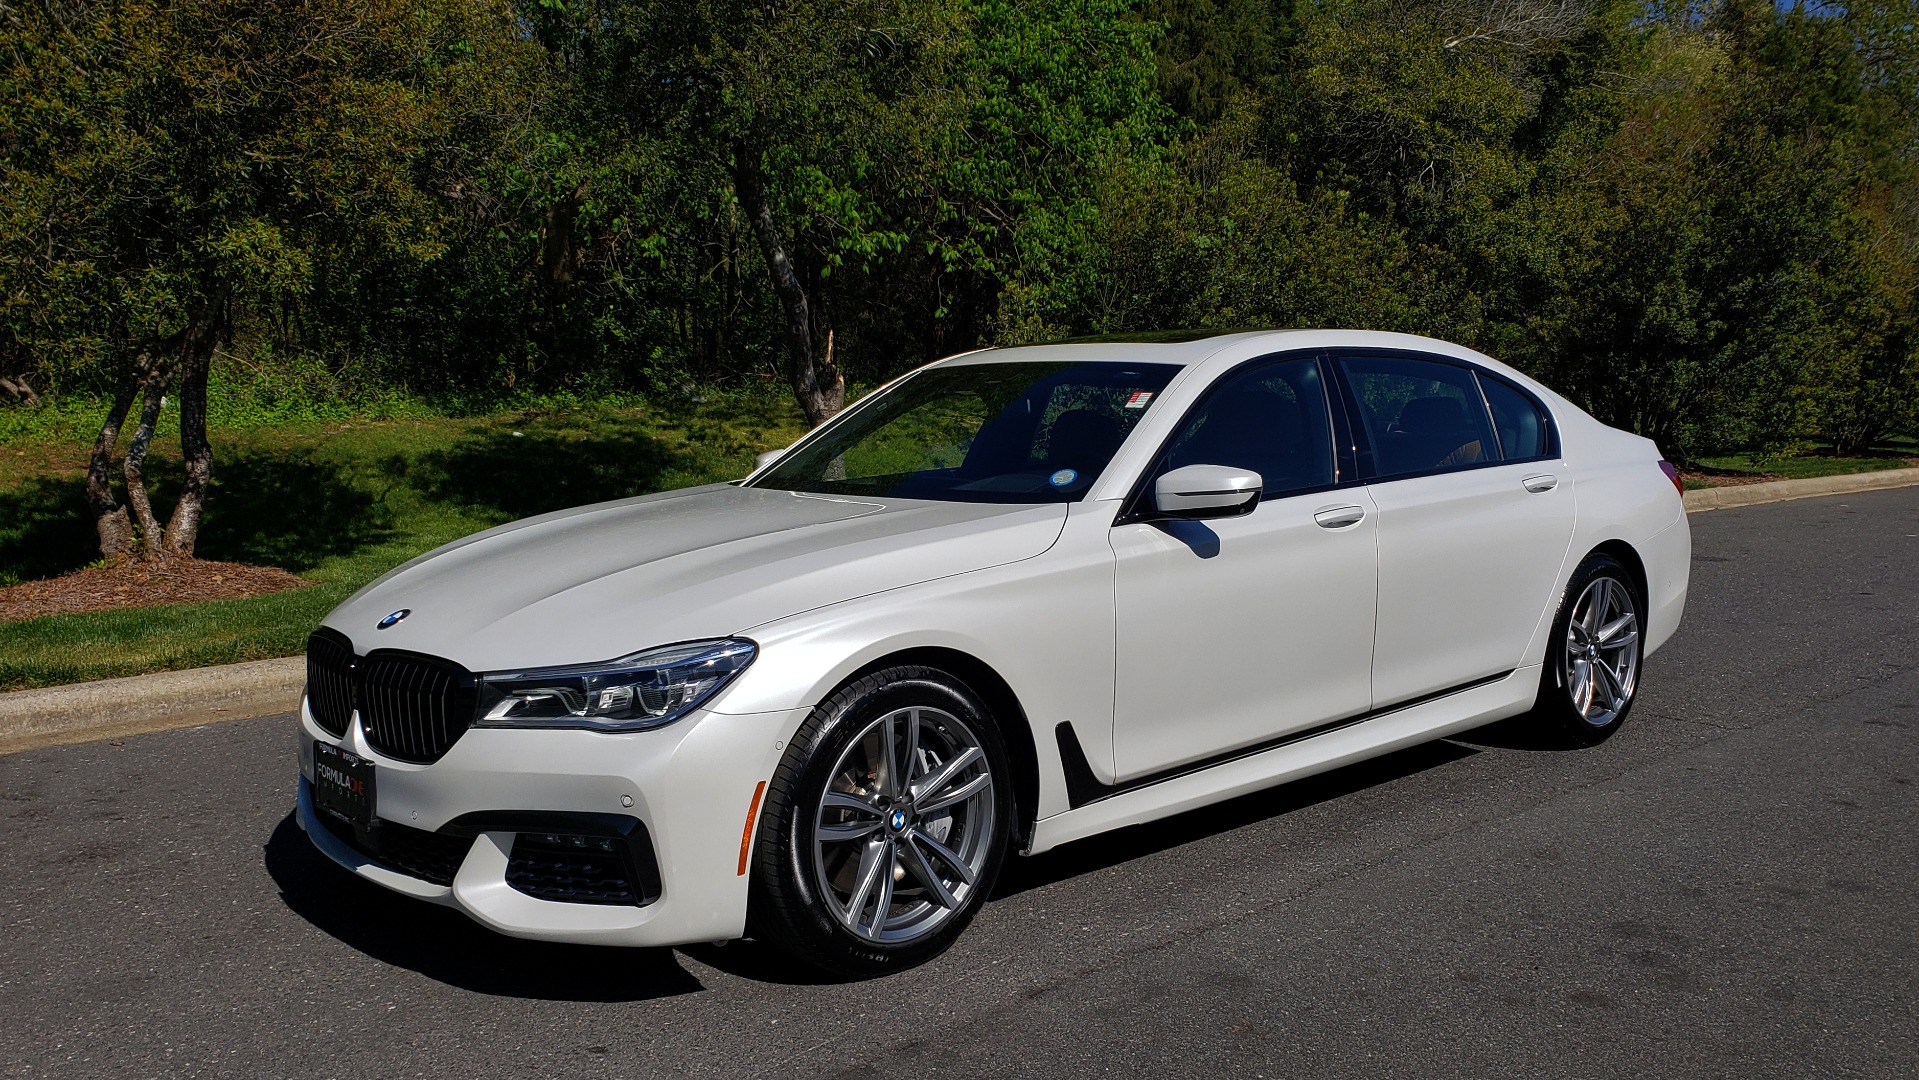 Used 2017 BMW 7 SERIES 750I XDRIVE / M-SPORT / EXEC PKG / DRVR ASST PLUS II / CLD WTHR for sale $48,495 at Formula Imports in Charlotte NC 28227 1